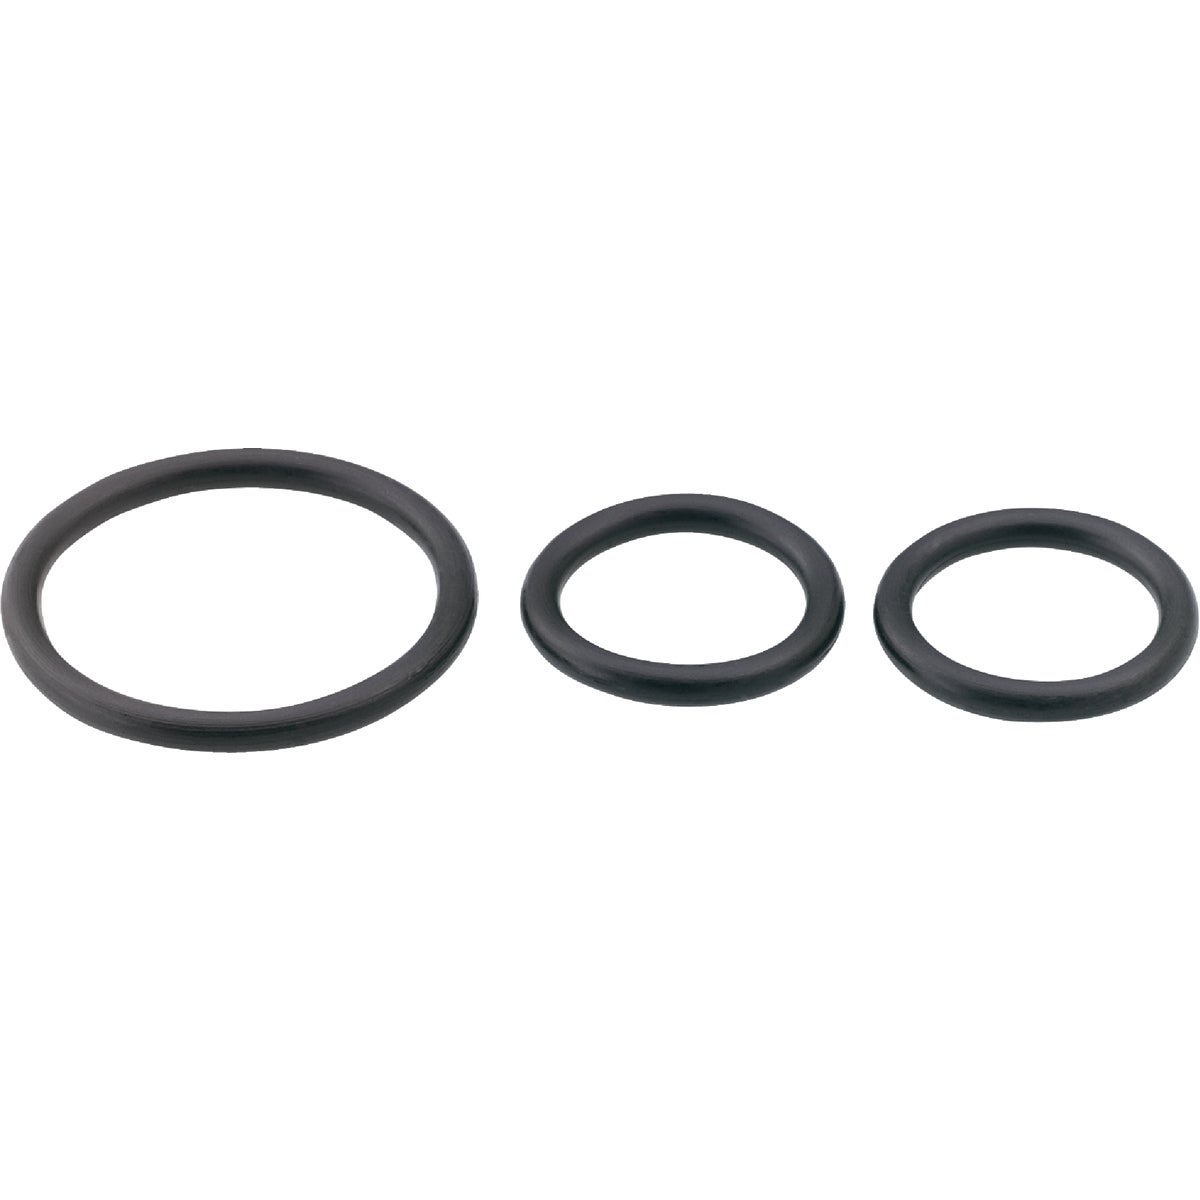 MOEN SPOUT O-RING KIT